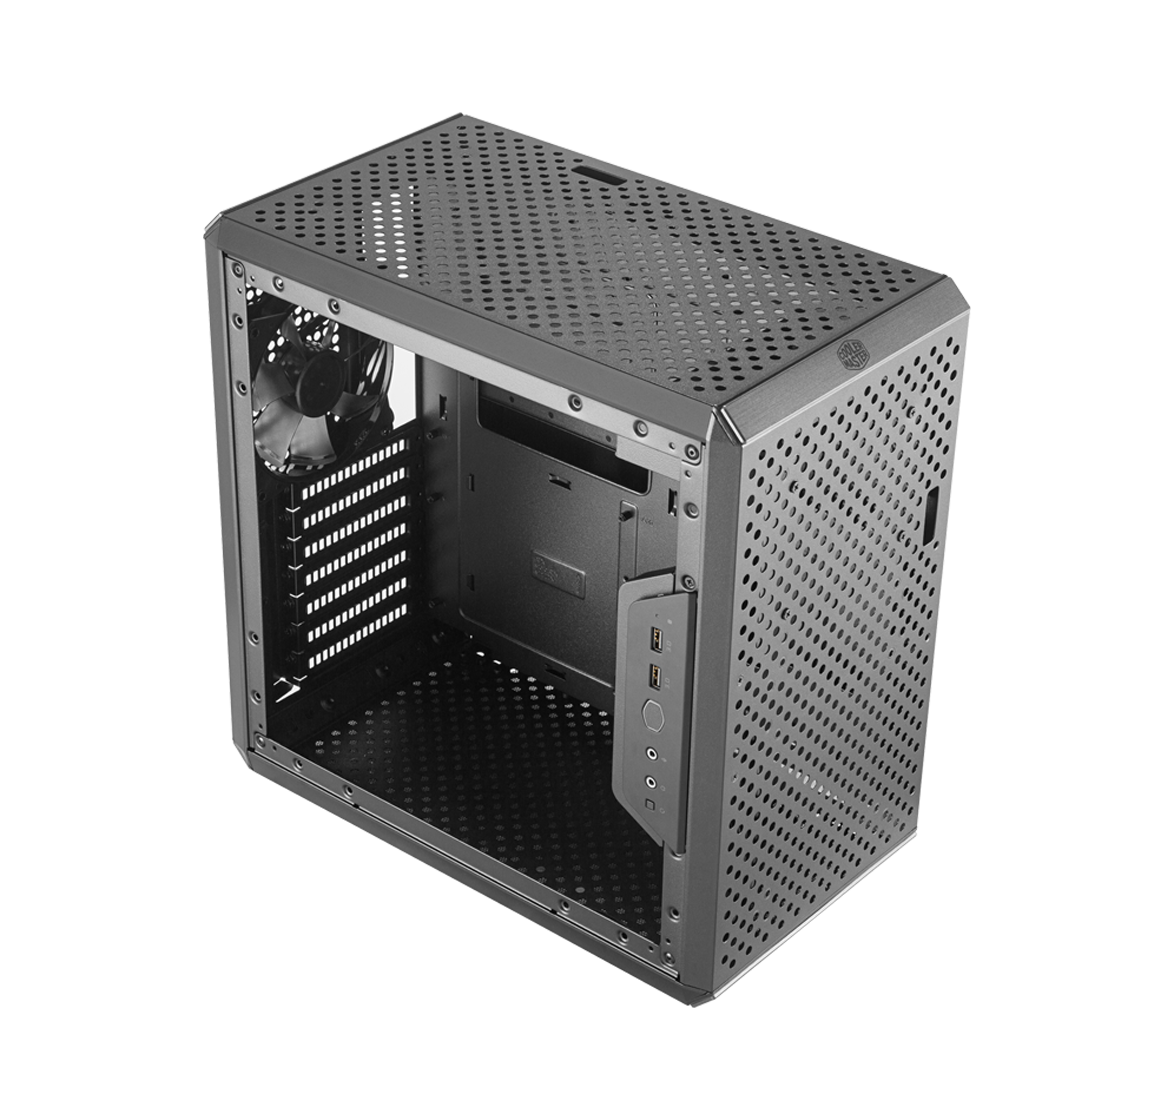 Fully Perforated Chassis